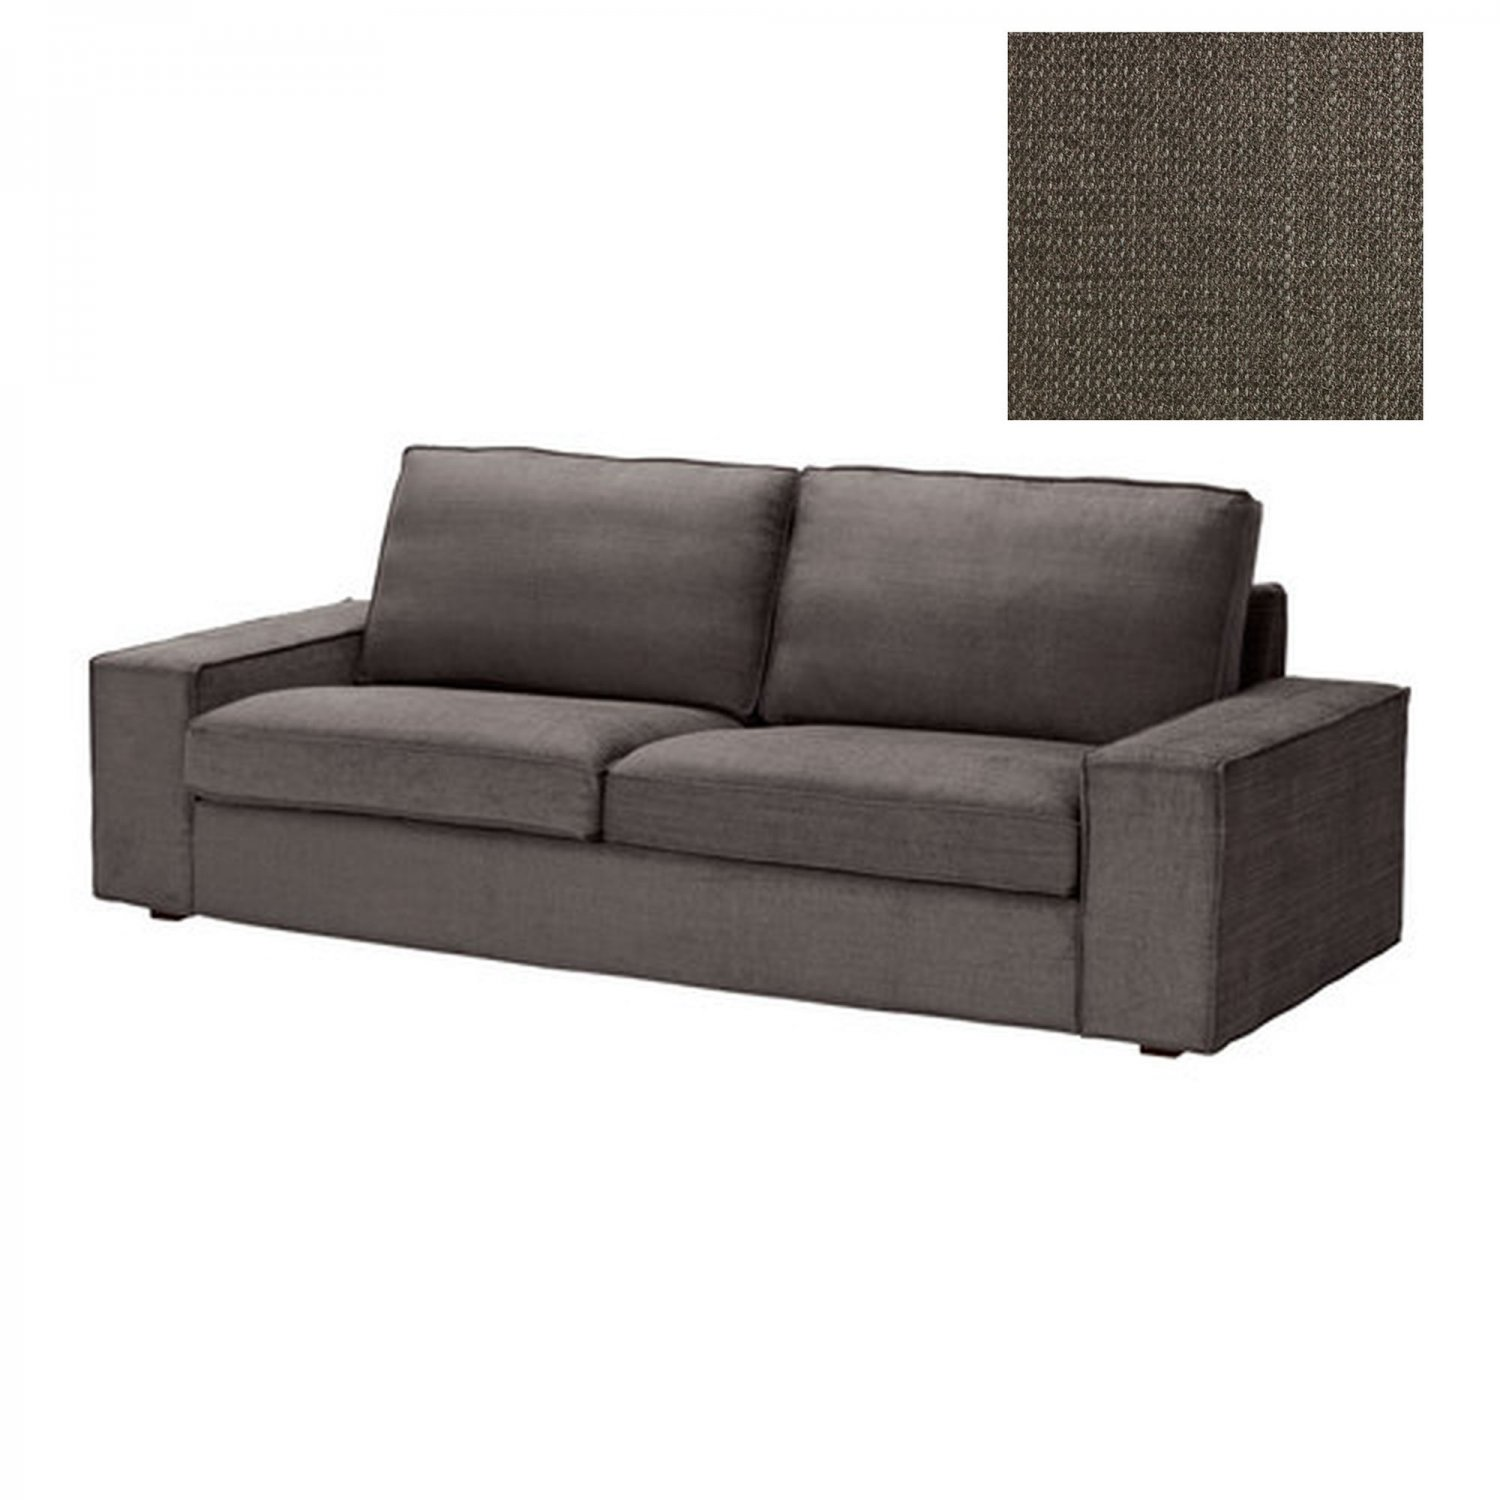 Kivik Sofa Ikea Test Ikea Kivik 3 Seat Sofa Slipcover Cover Tullinge Gray Brown